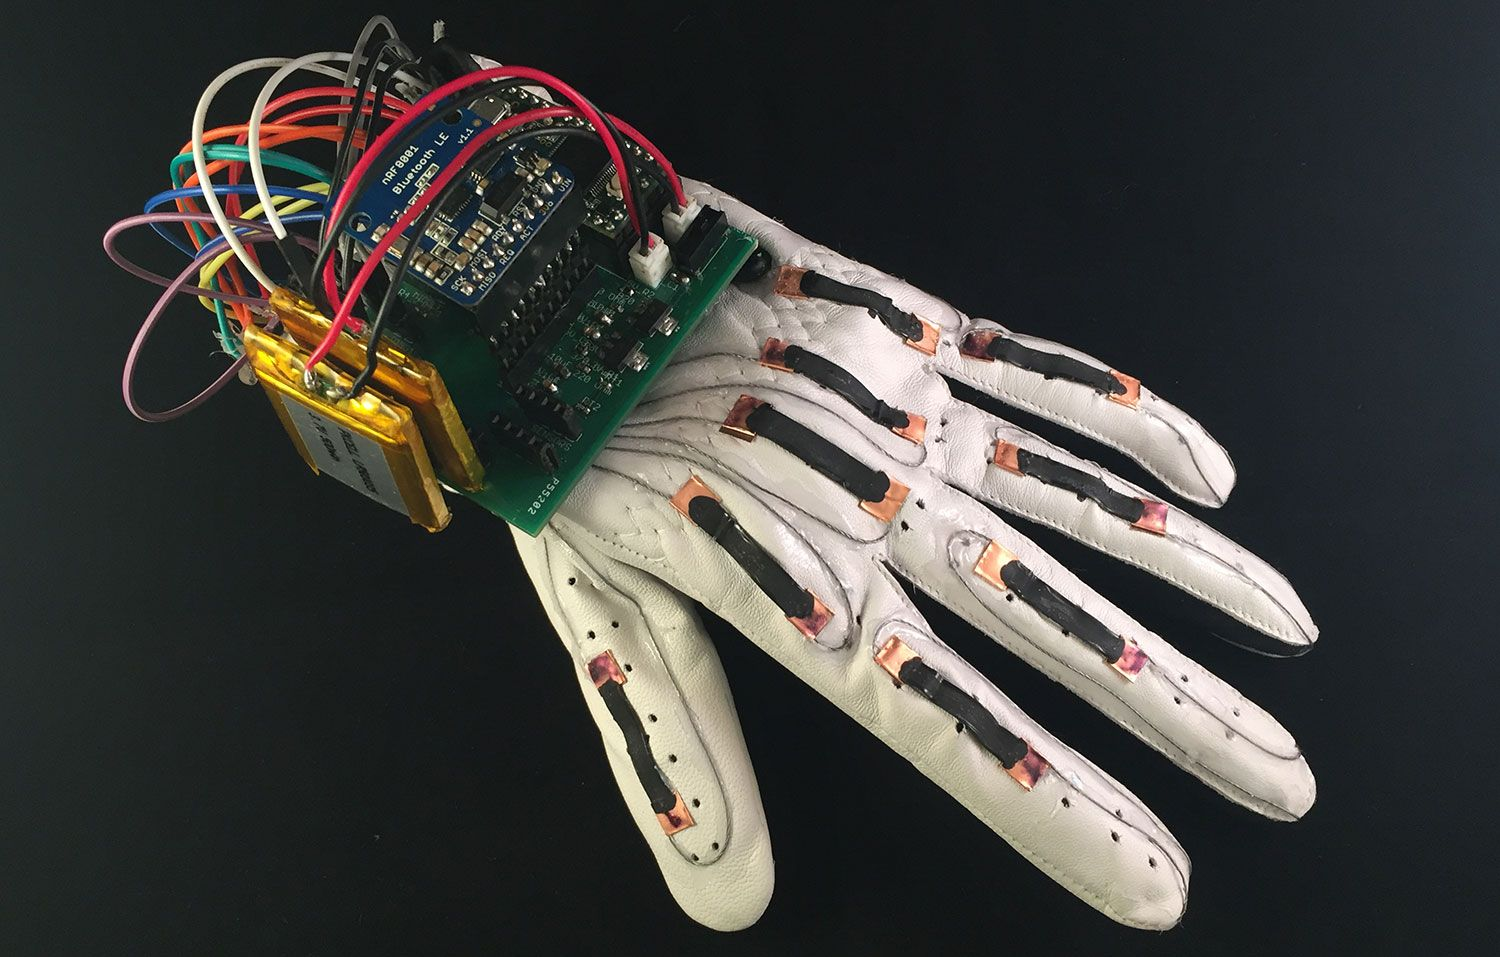 Created an inexpensive glove that converts sign language to text